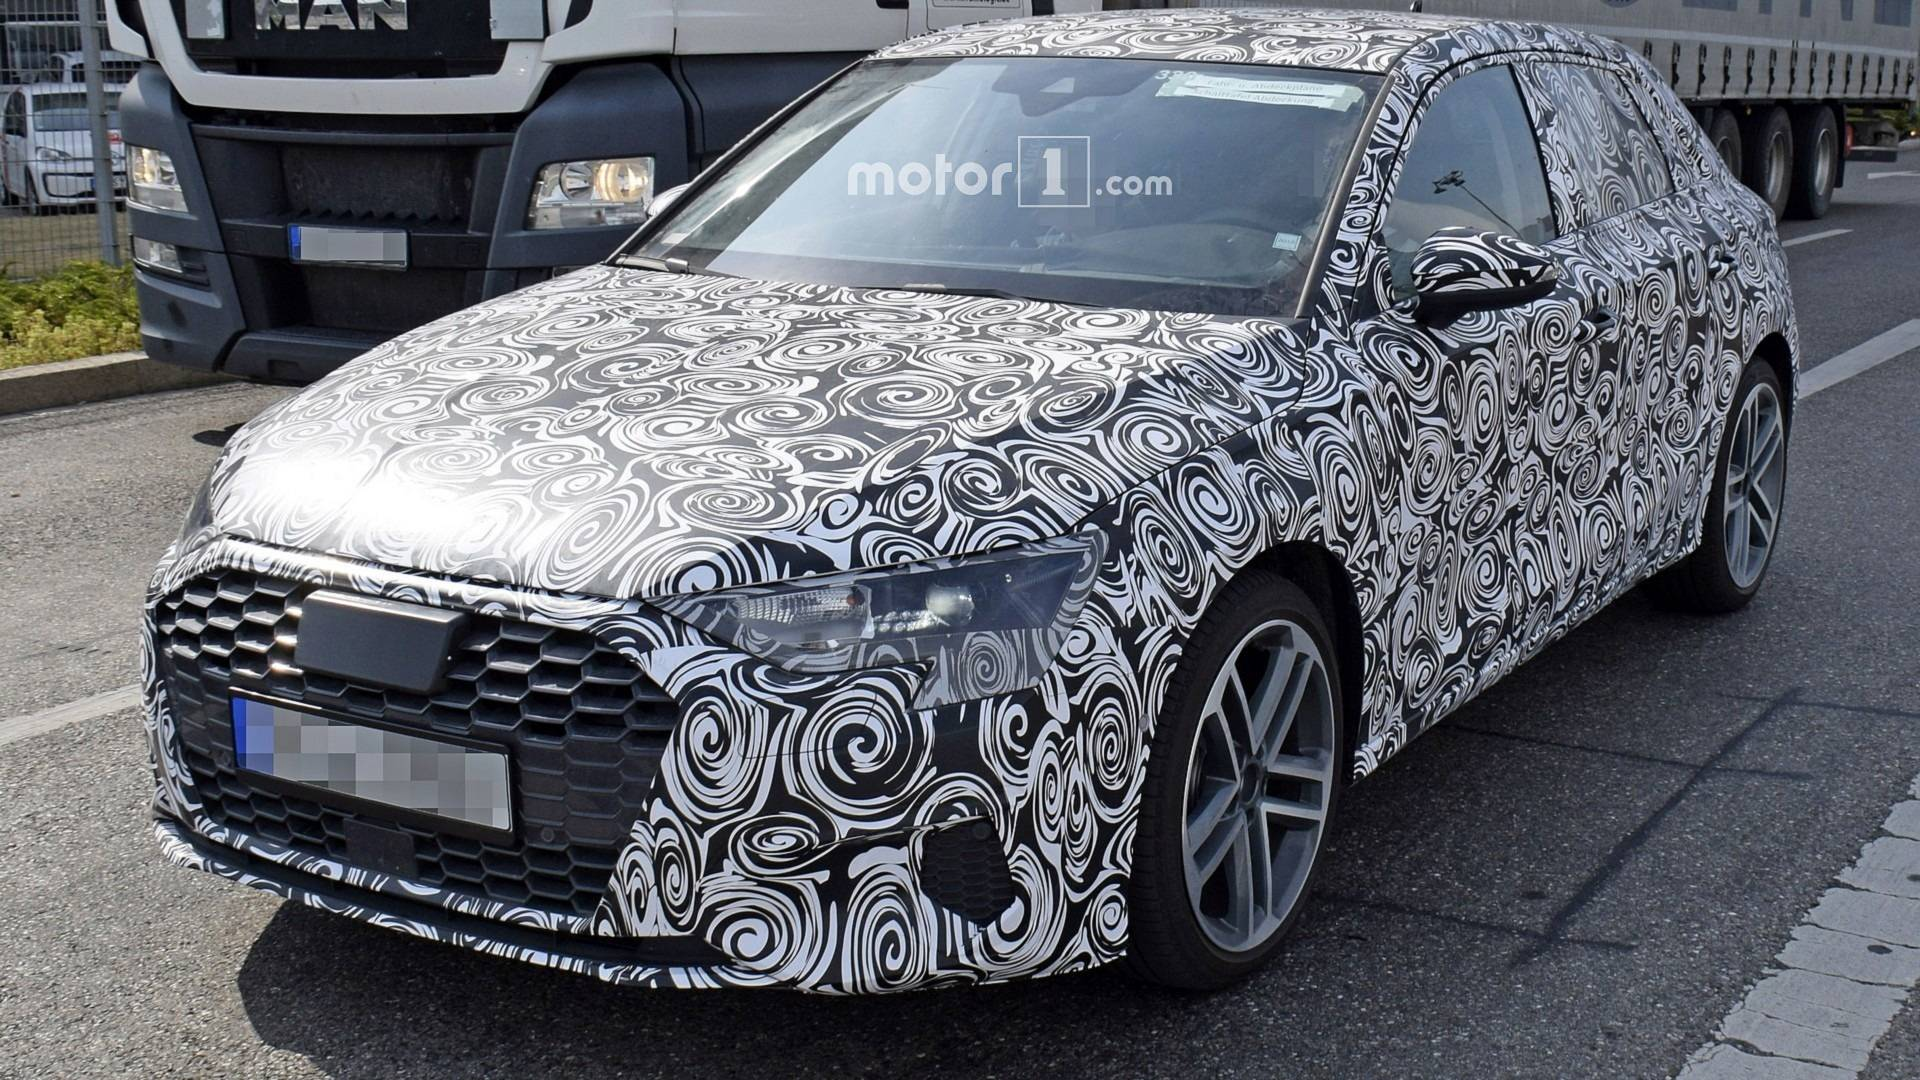 New Audi S Spied For The First Time UPDATE A Spotted - A3 audi